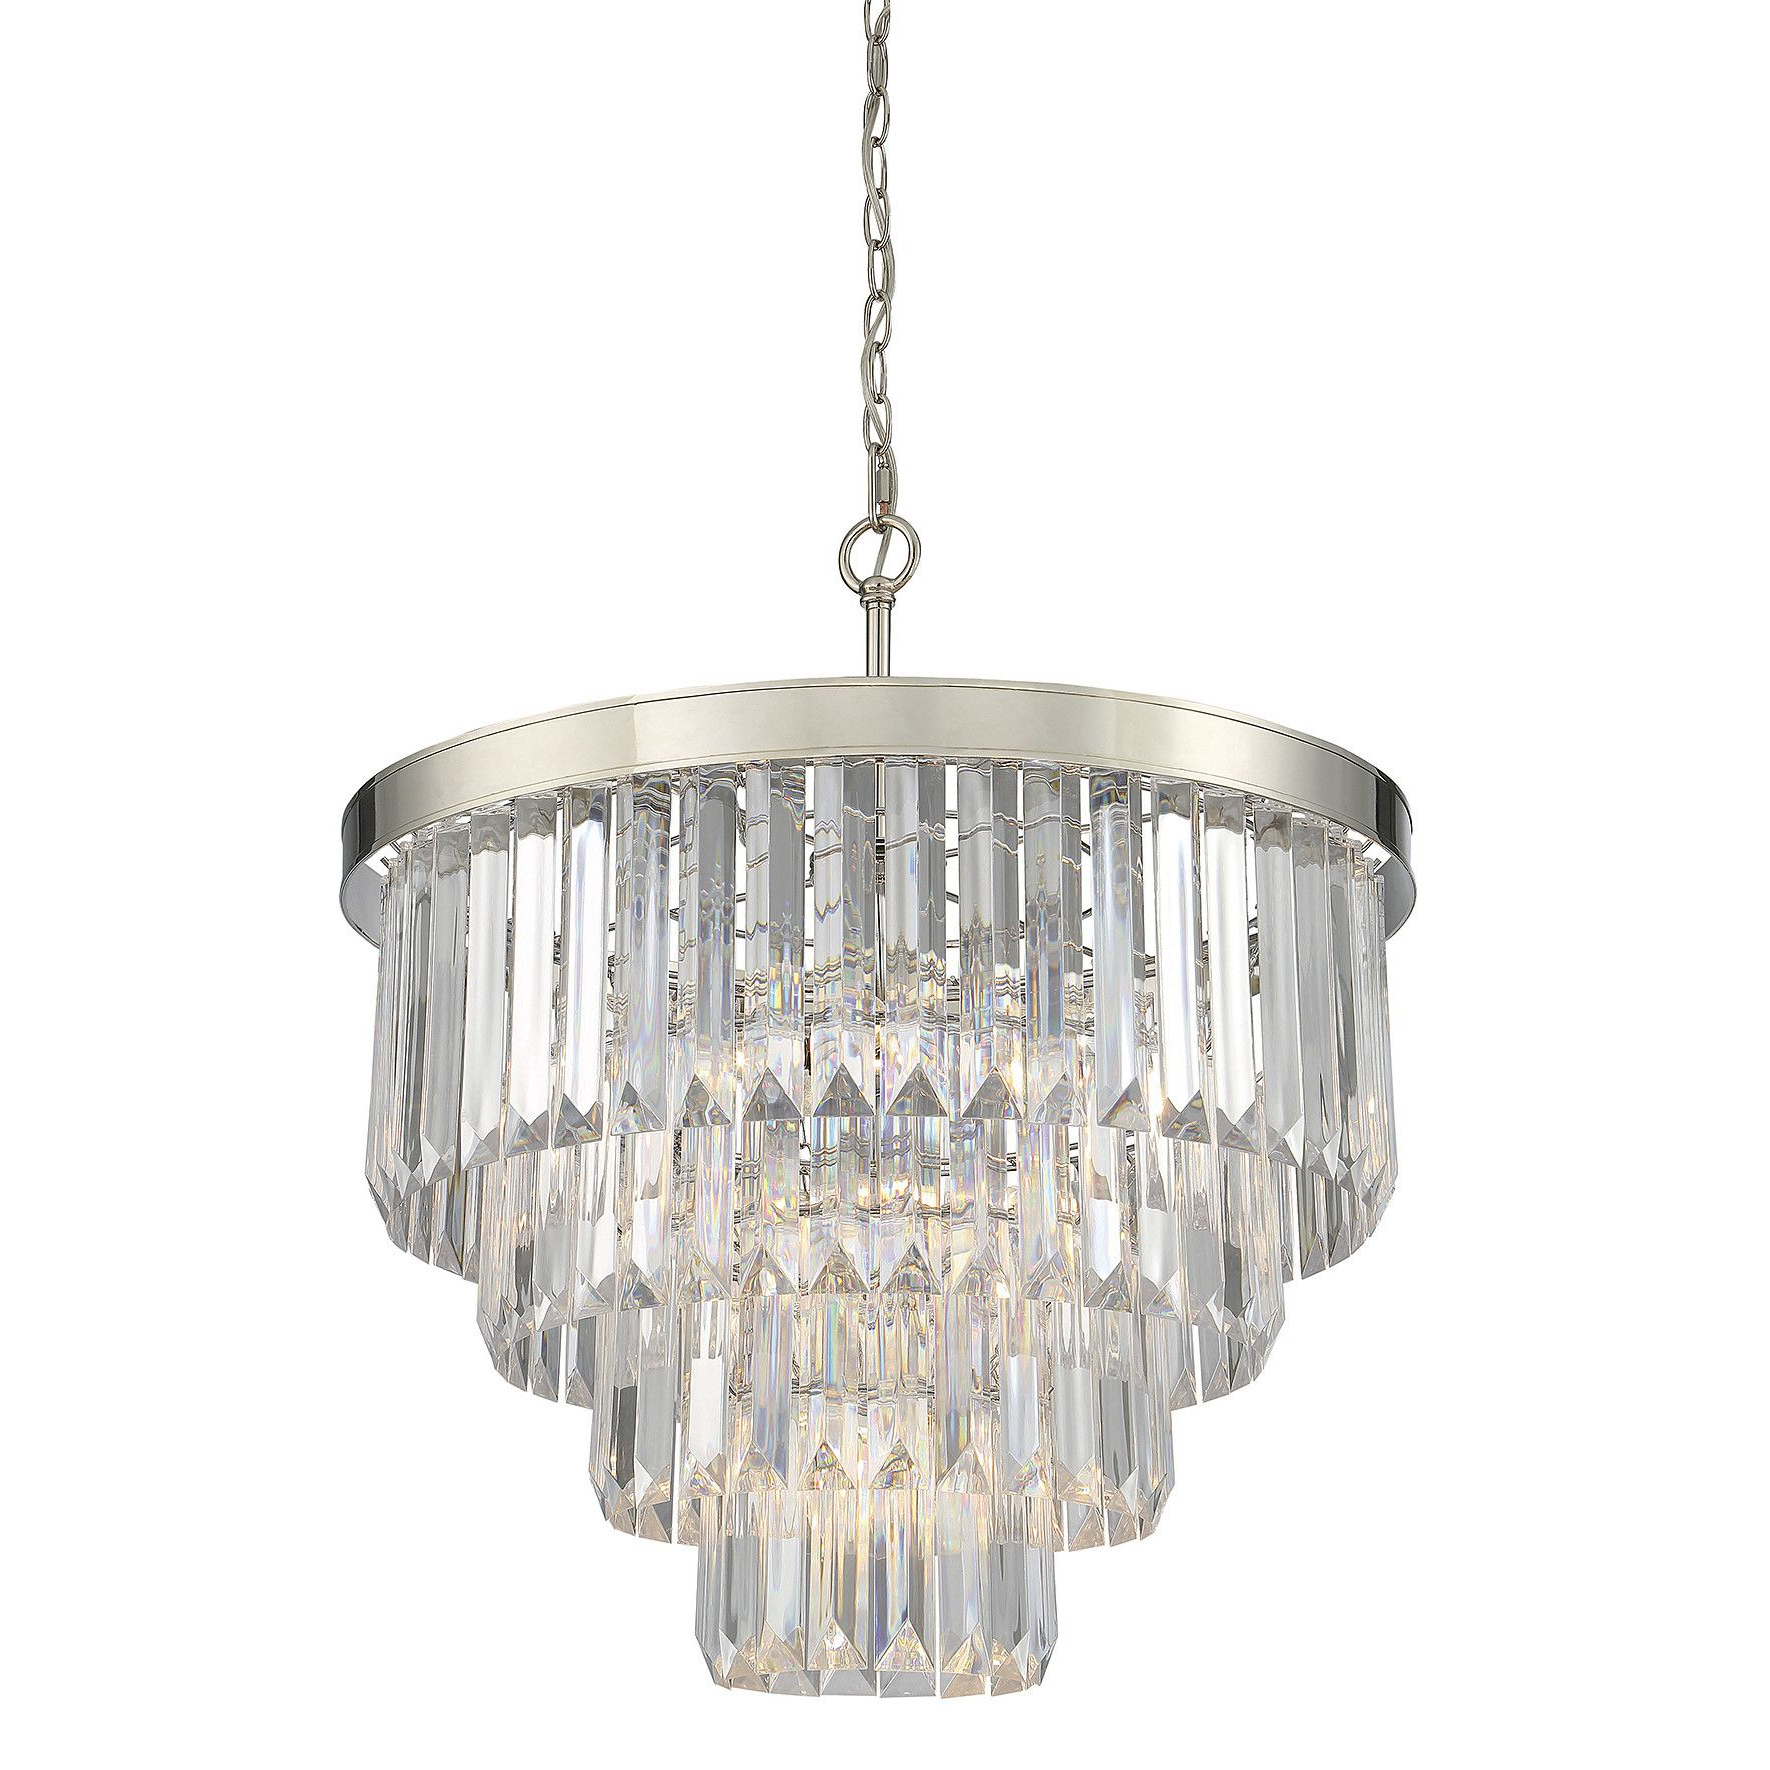 2019 Bramers 6 Light Novelty Chandeliers Pertaining To Mornimont 6 Light Drum Chandelier (View 1 of 20)